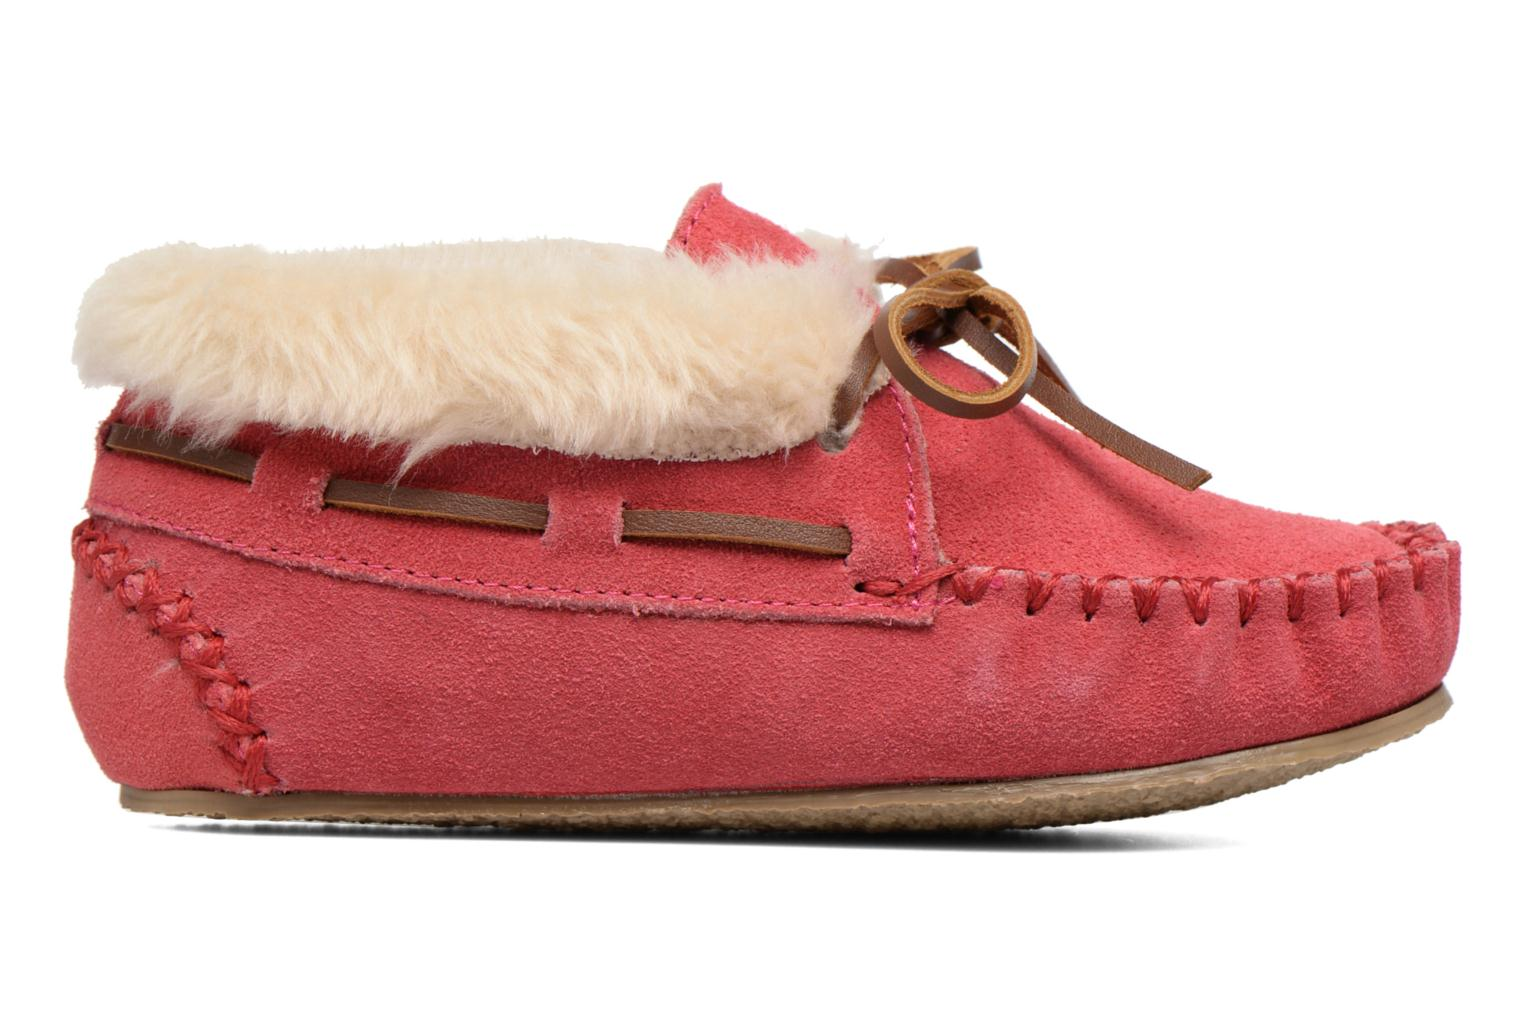 Charley Hot Pink Suede